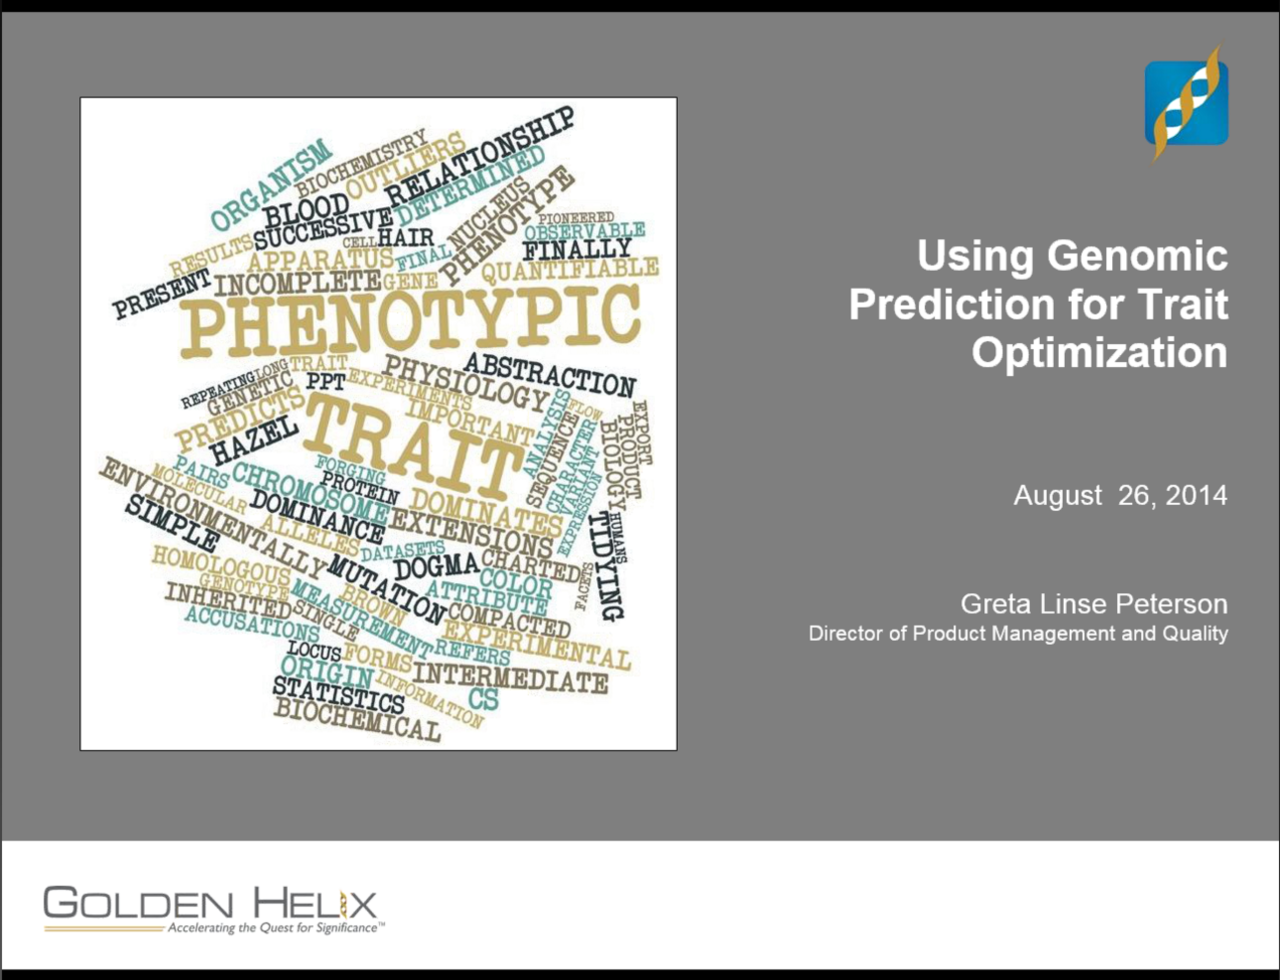 Using Genomic Prediction for Trait Optimization